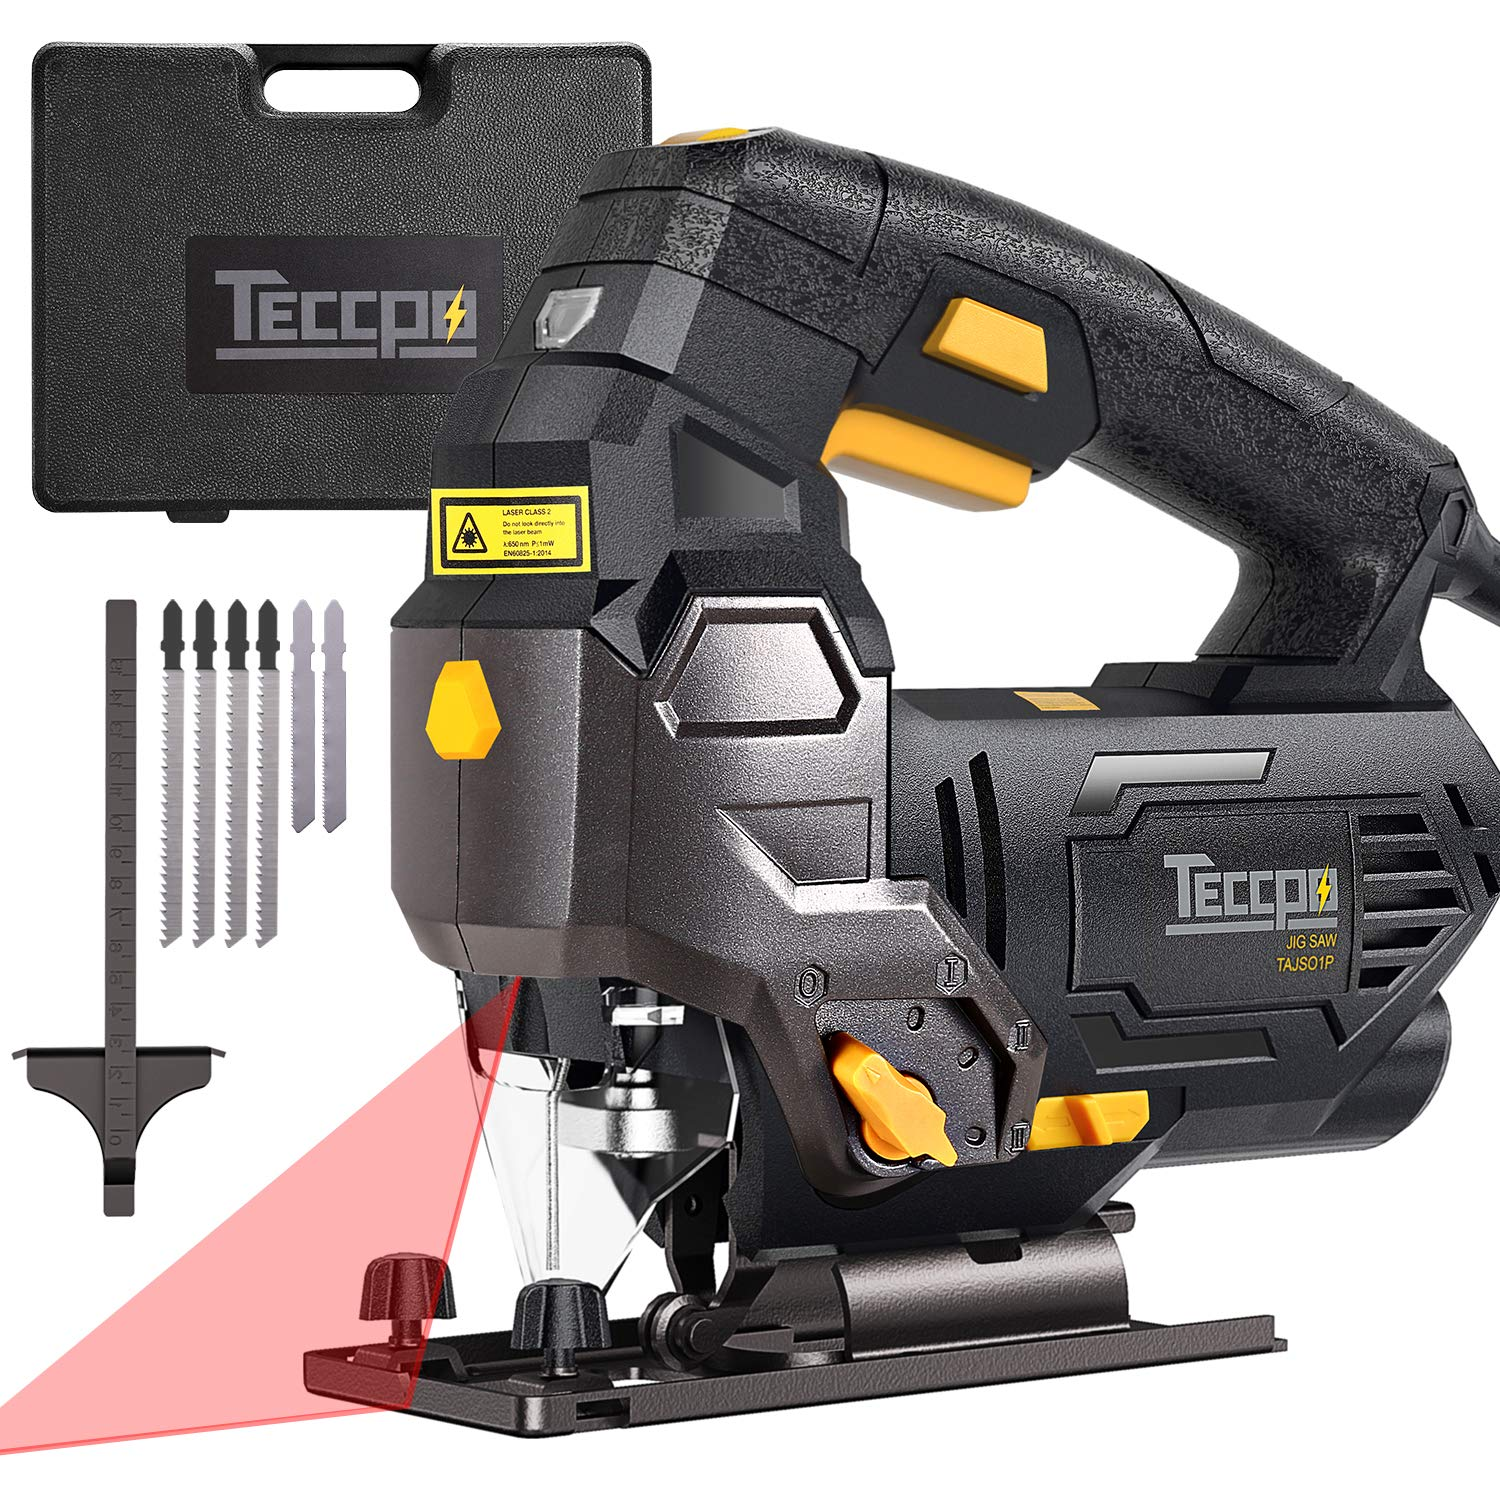 Jigsaw, TECCPO Professional Jig Saw with Laser Guide, 6pcs Blades, Carrying Case,78.74 Inches Cord, Scale Ruler, Bevel Cutting Angle -45 -45 , Variable Speed Dial, 3000SPM, Pure Copper Motor -TAJS01P